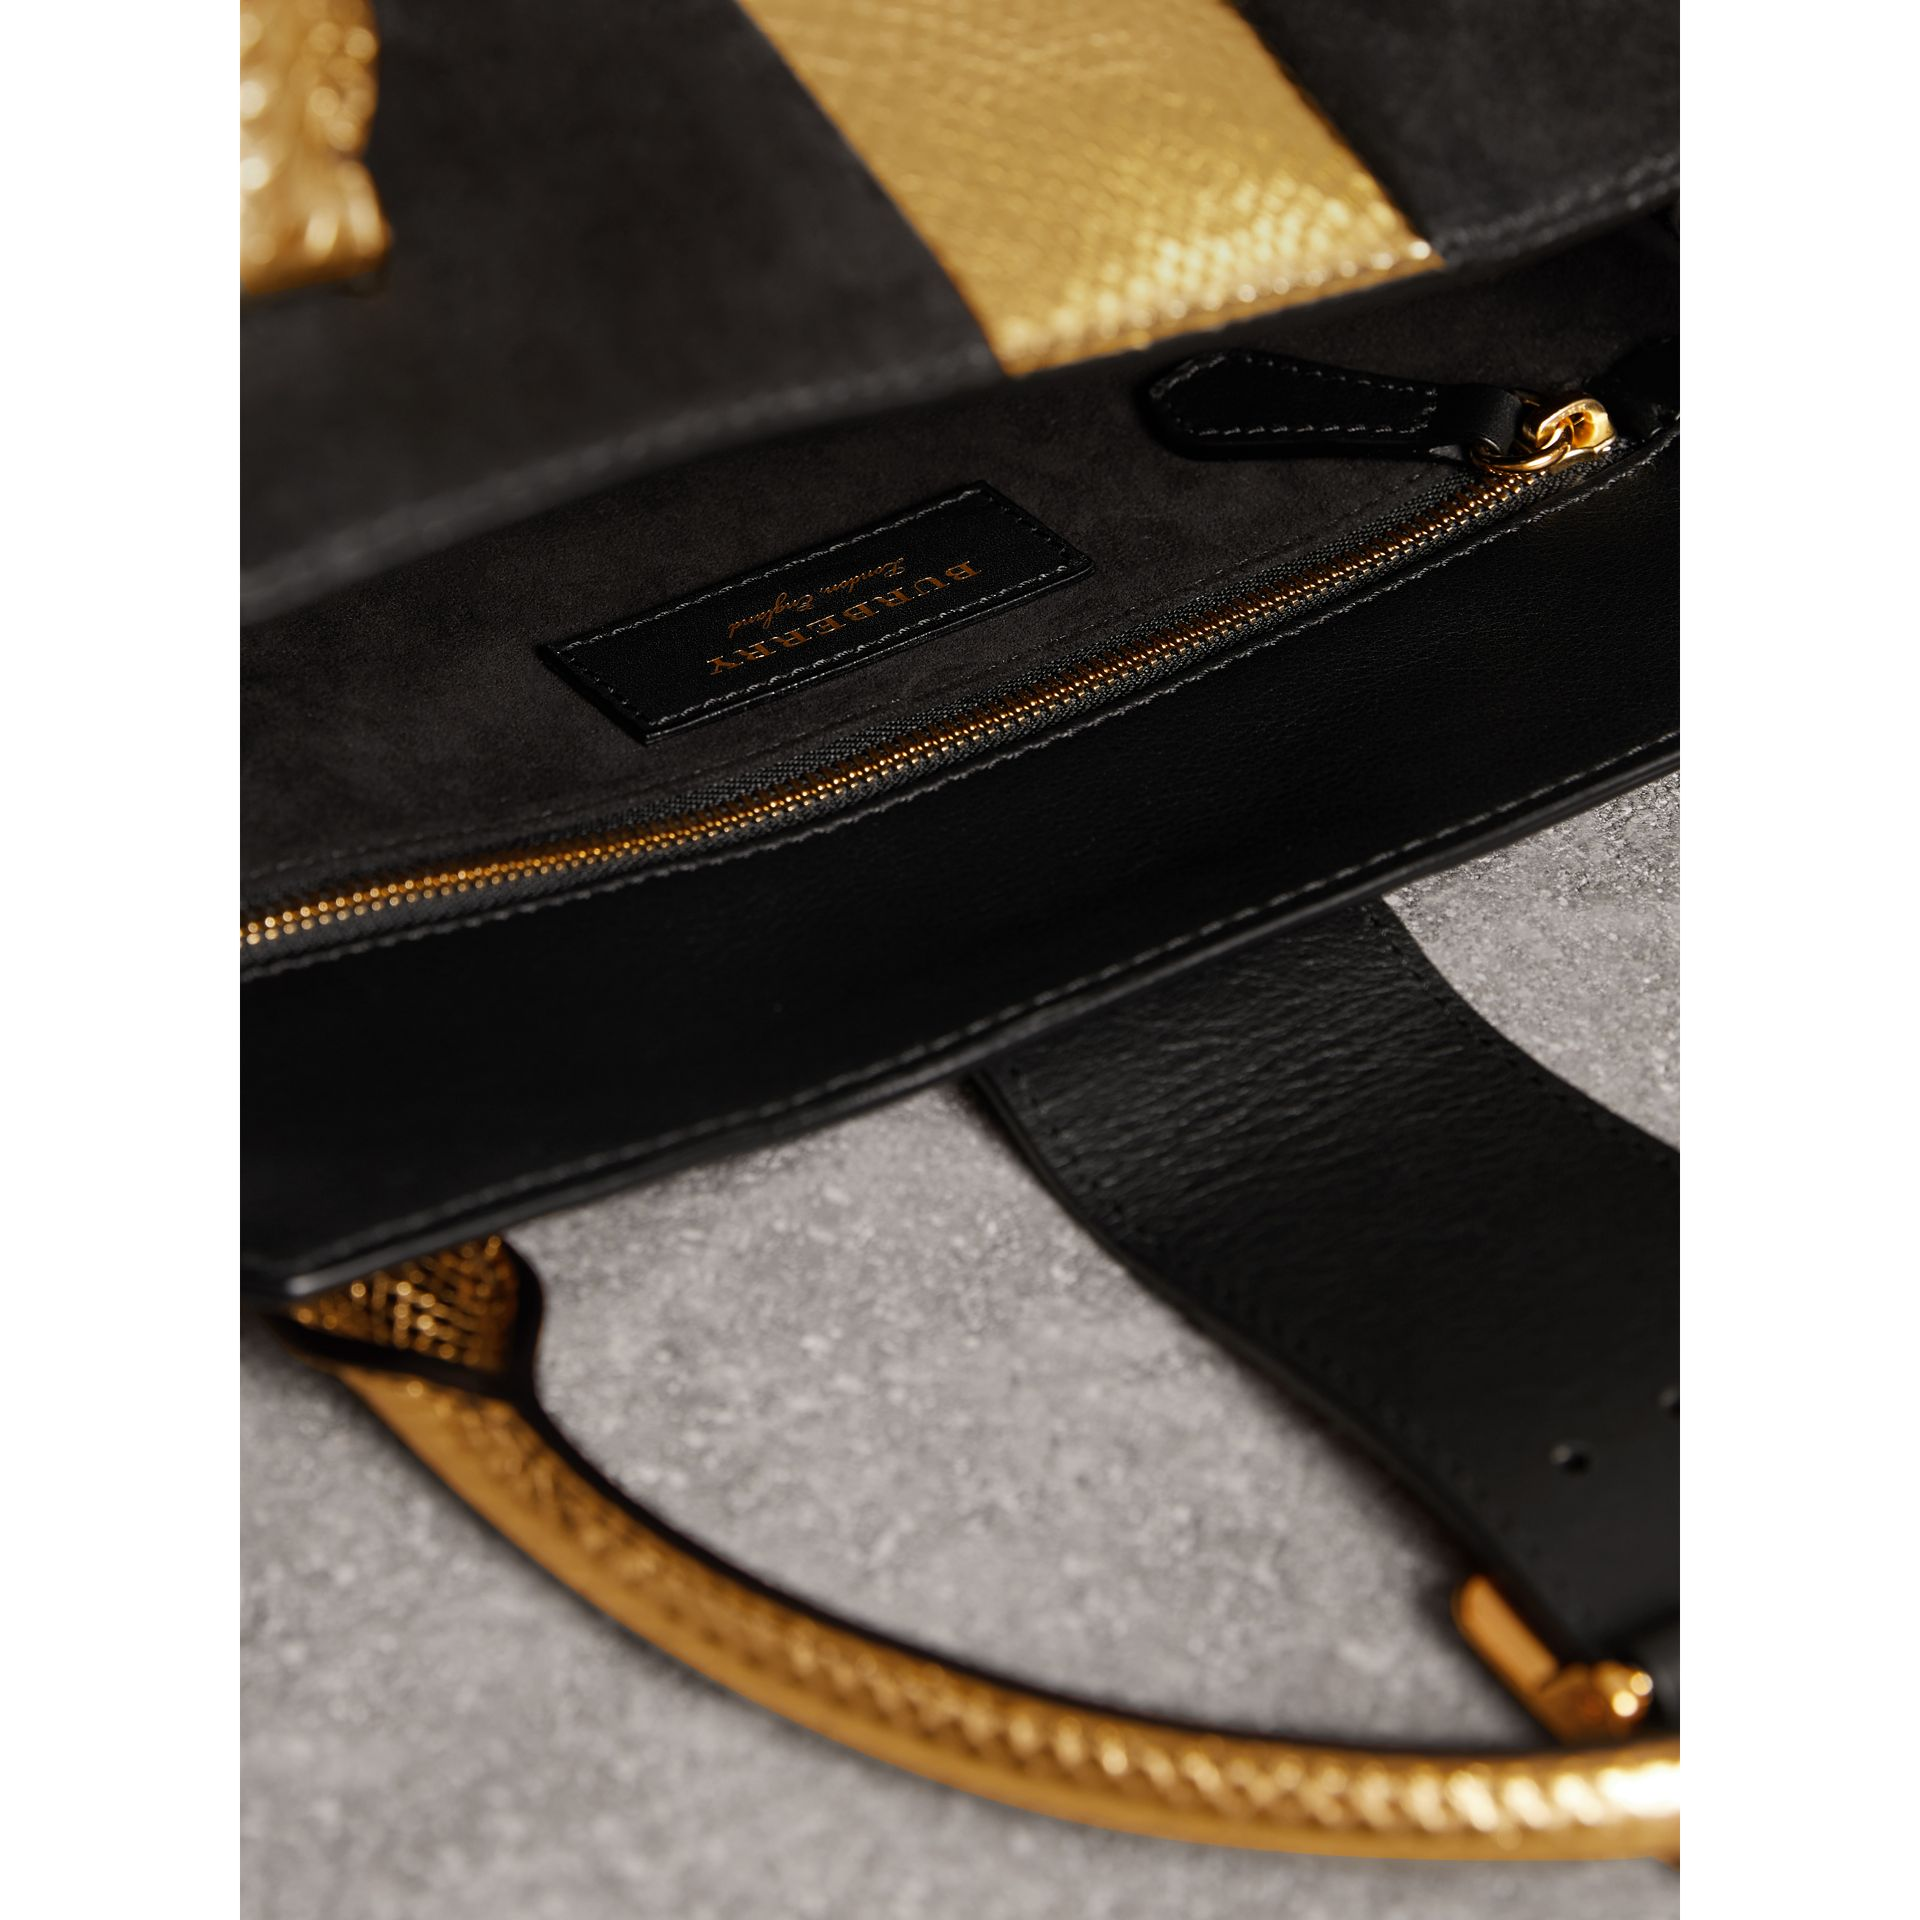 Sac tote The Buckle moyen en cuir velours et peau de serpent (Noir/or) - Femme | Burberry - photo de la galerie 5